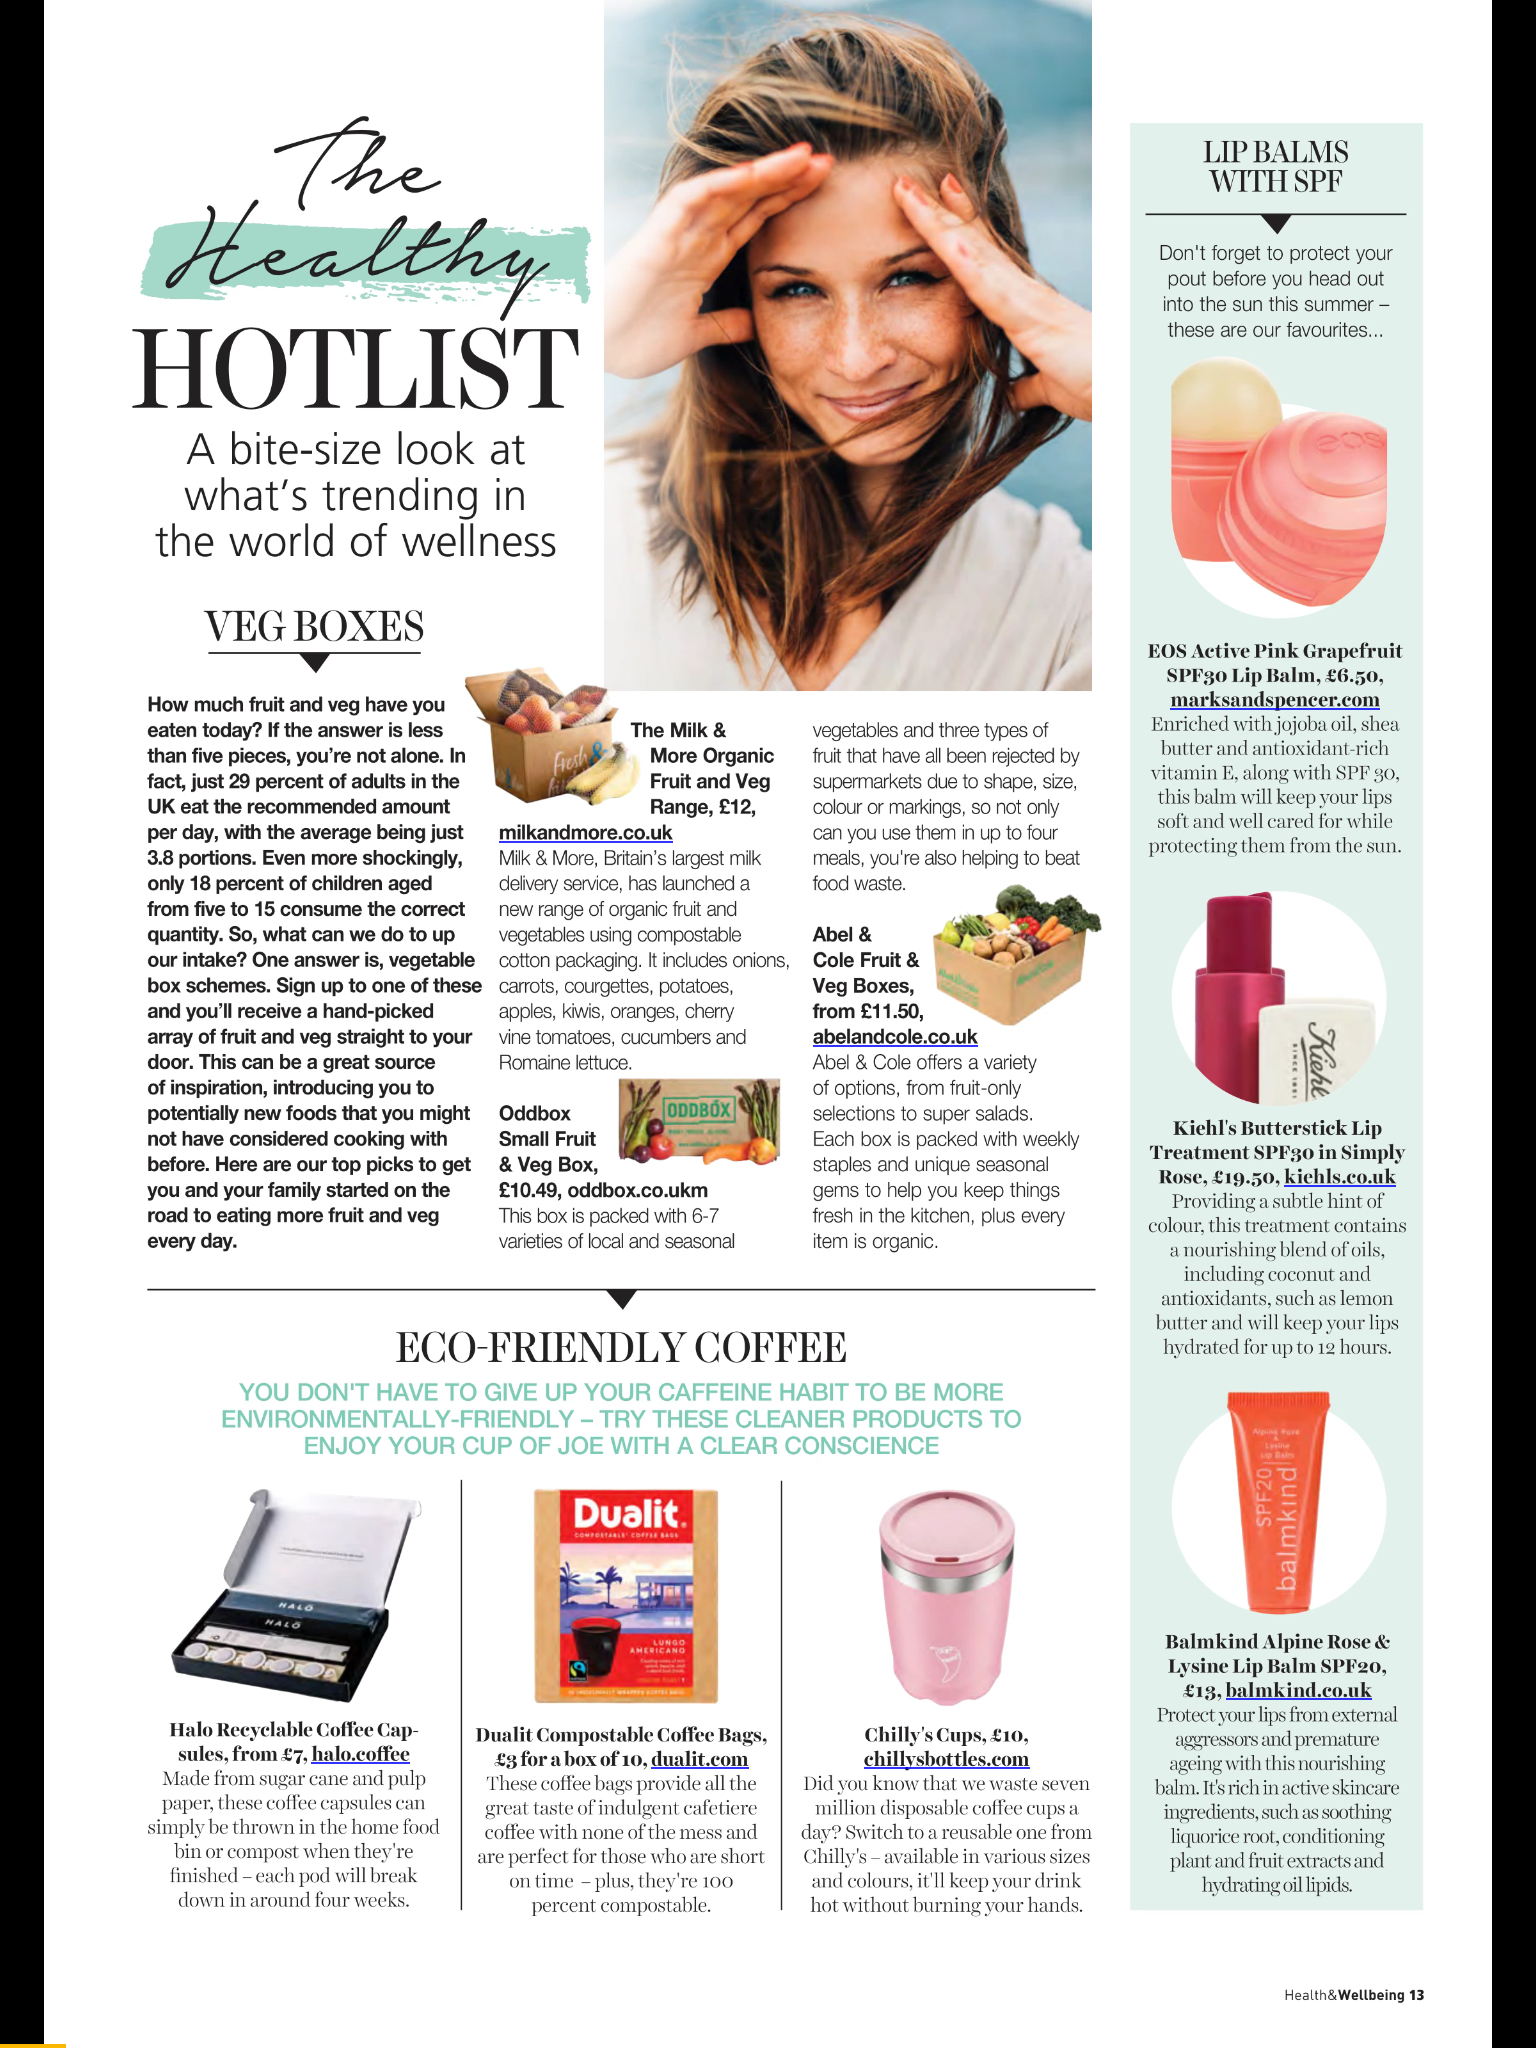 The Healthy Hotlist (Health & Wellbeing- 04/19) -